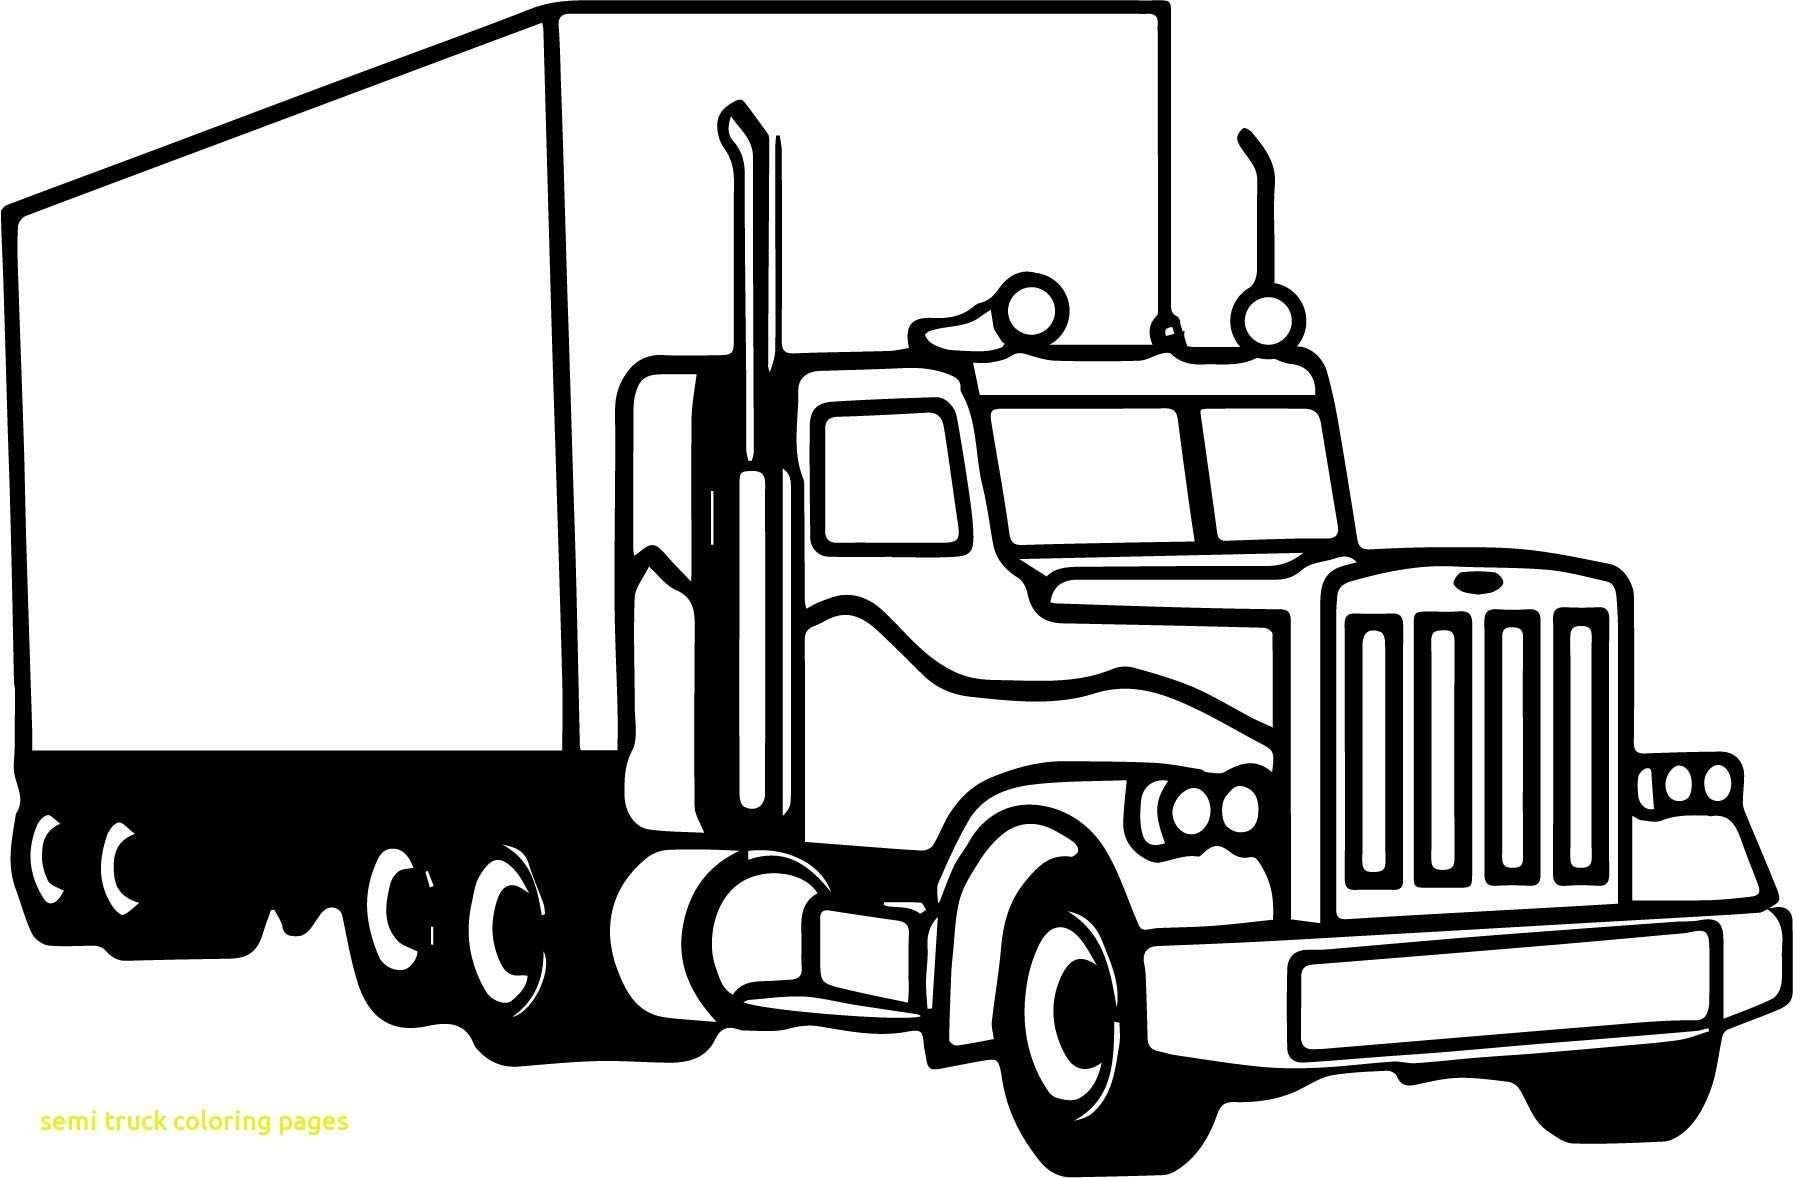 25+ Pretty Photo of Semi Truck Coloring Pages | Truck ...